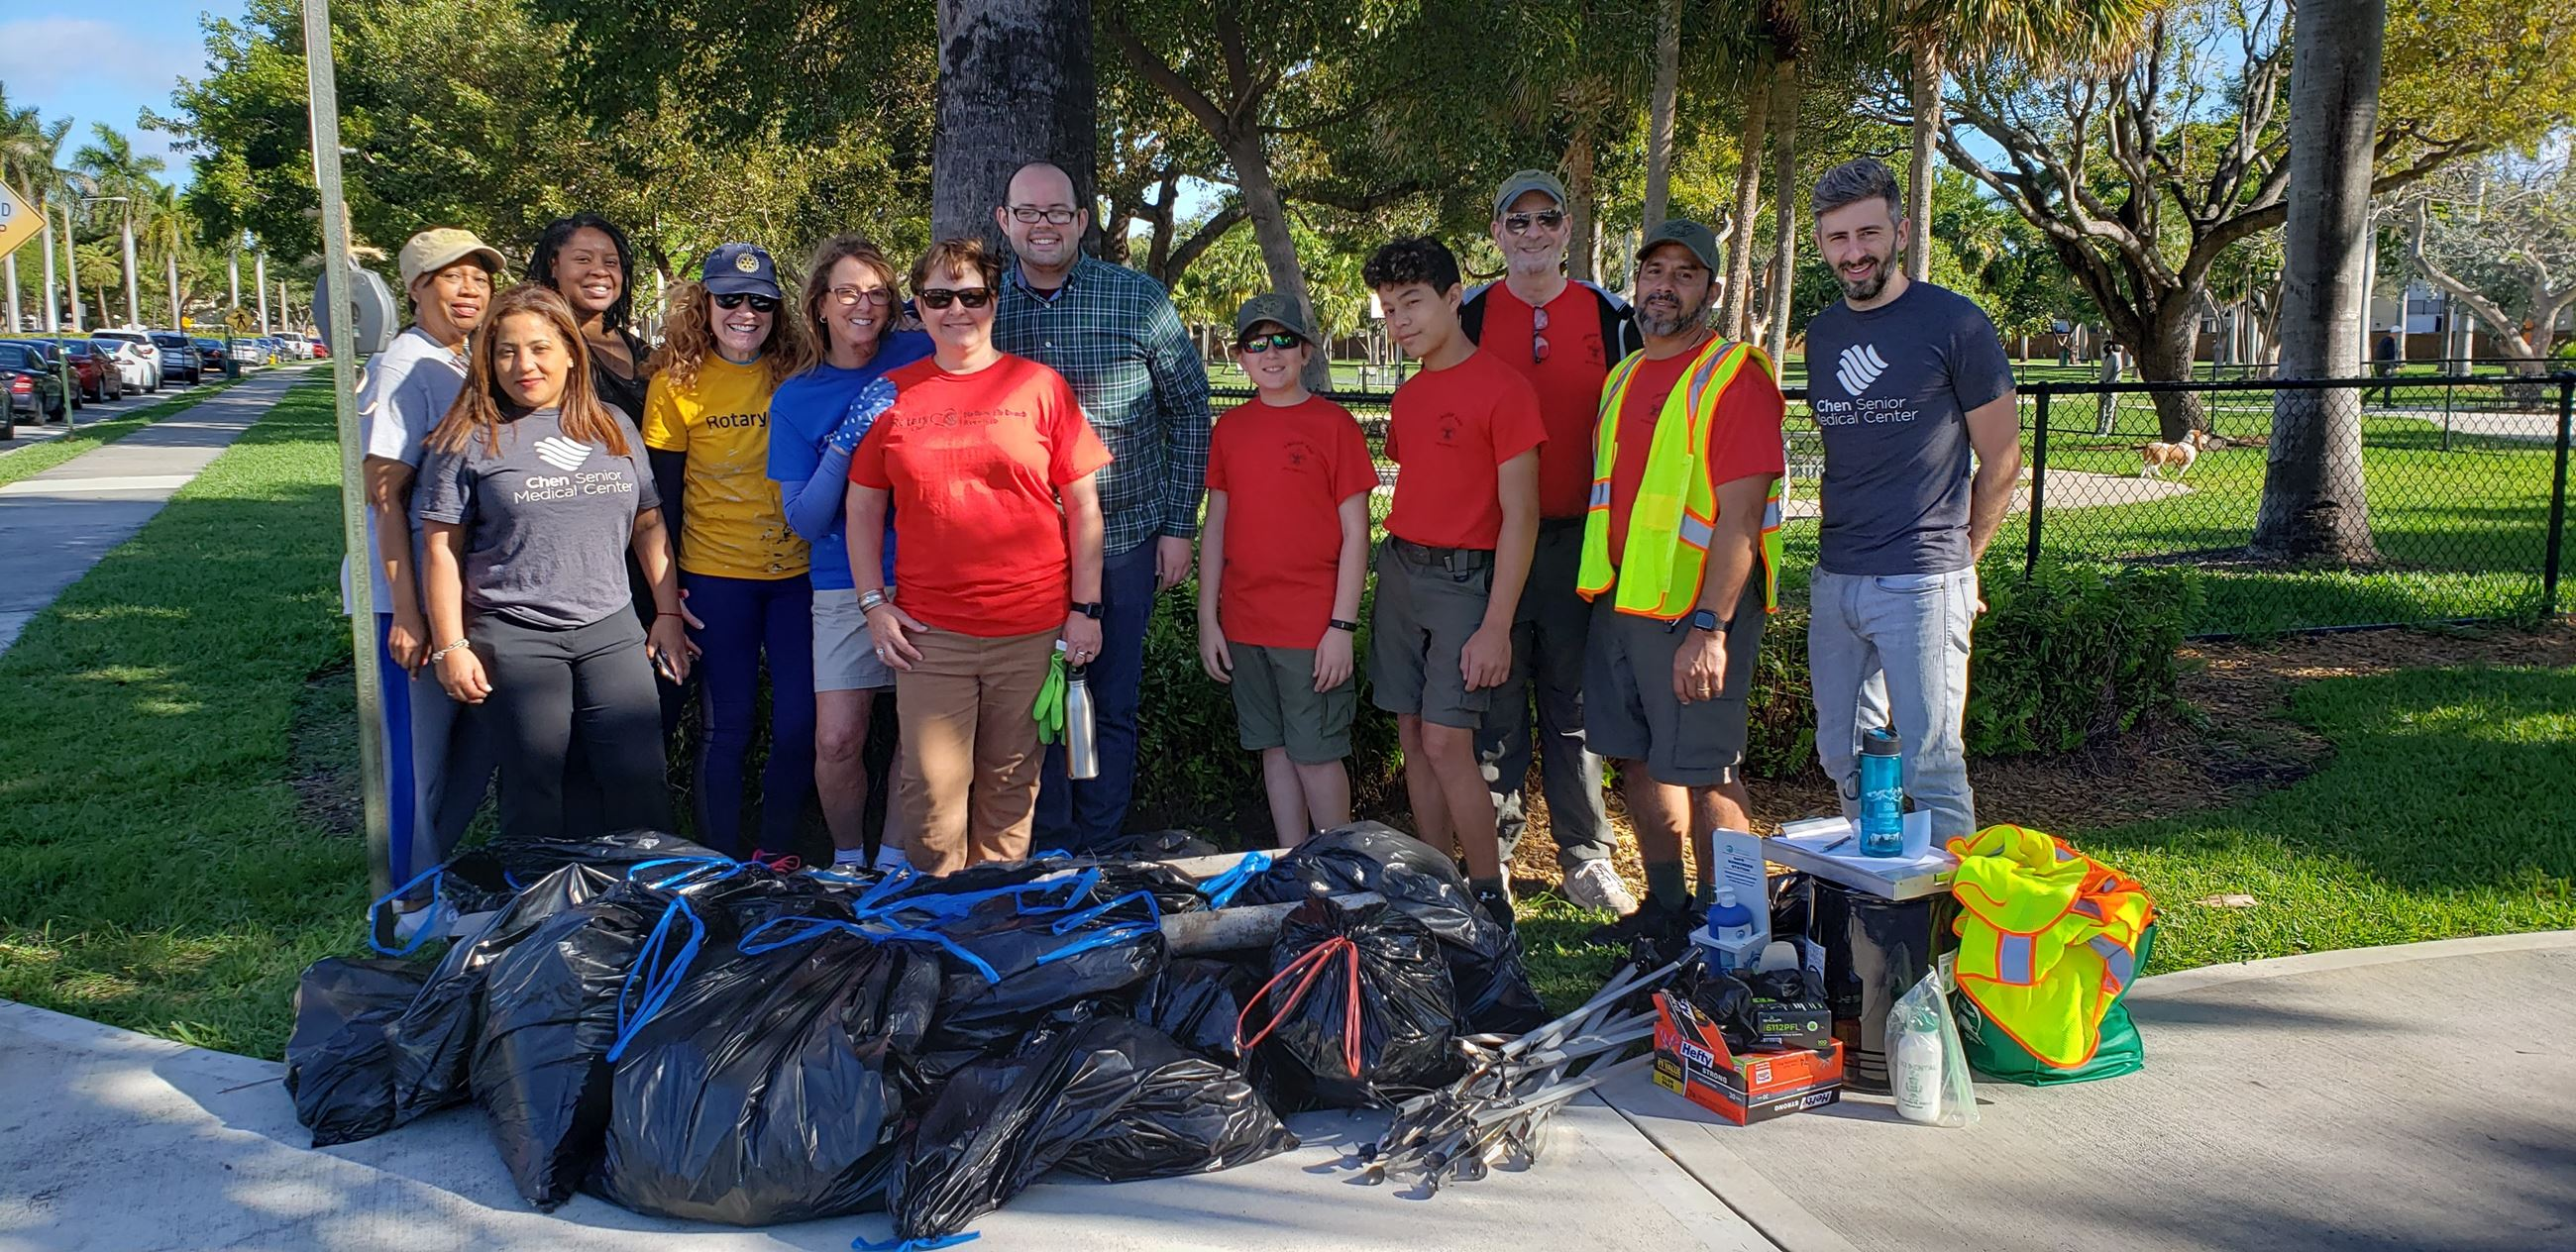 group of volunteers posing behind trash bags full of litter they picked up